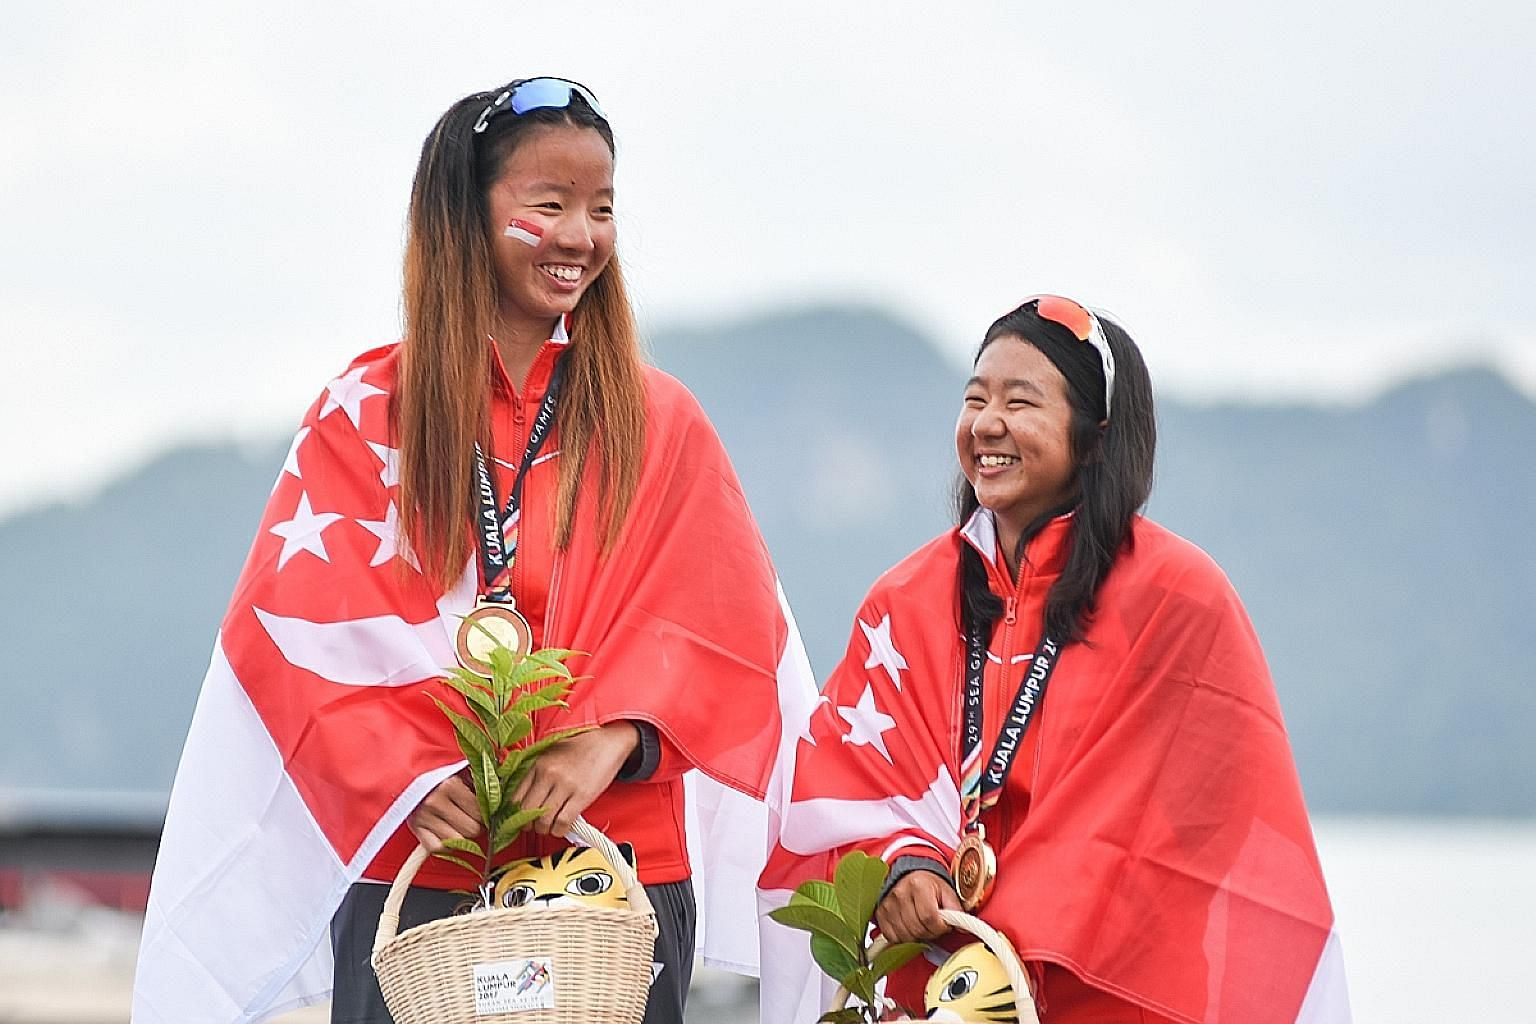 Cheryl Teo (far left) and Yukie Yokoyama won gold at the SEA Games in 2017 and finished fourth at the Asian Games last year.